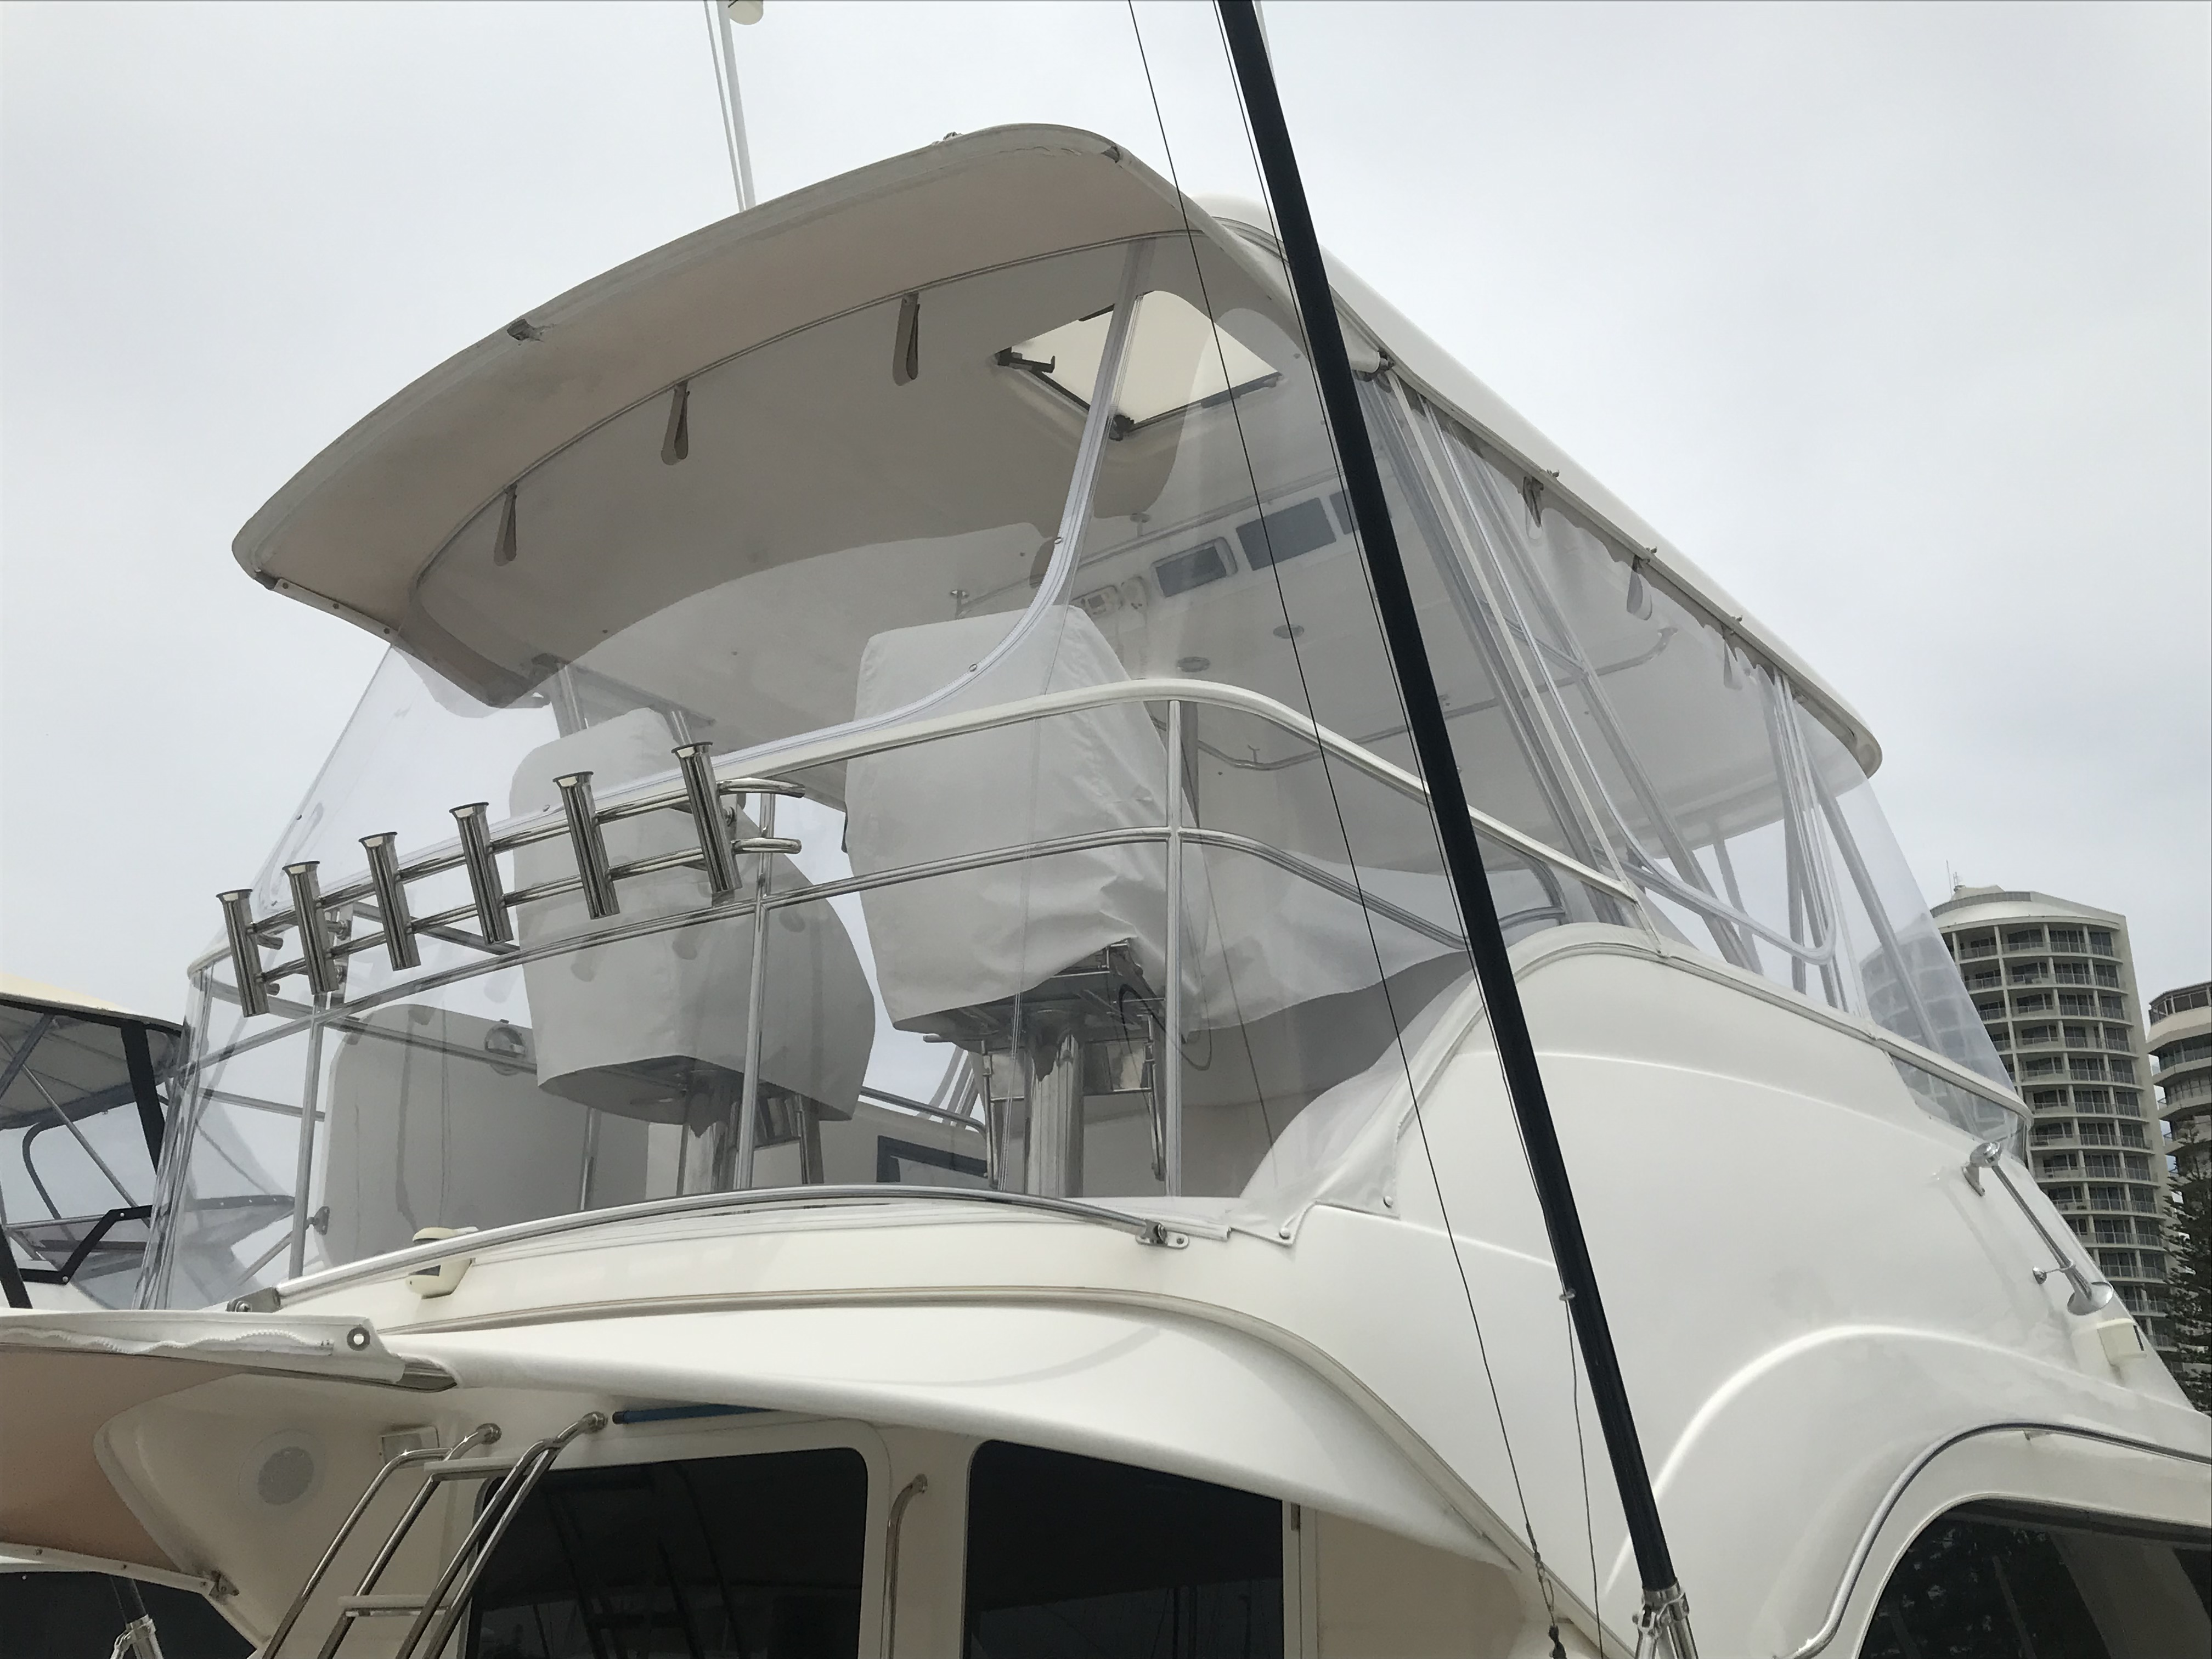 Queensland Canvas & Marine. Custom made clears, biminis and covers. For all your boating cover needs. Marine trimming.